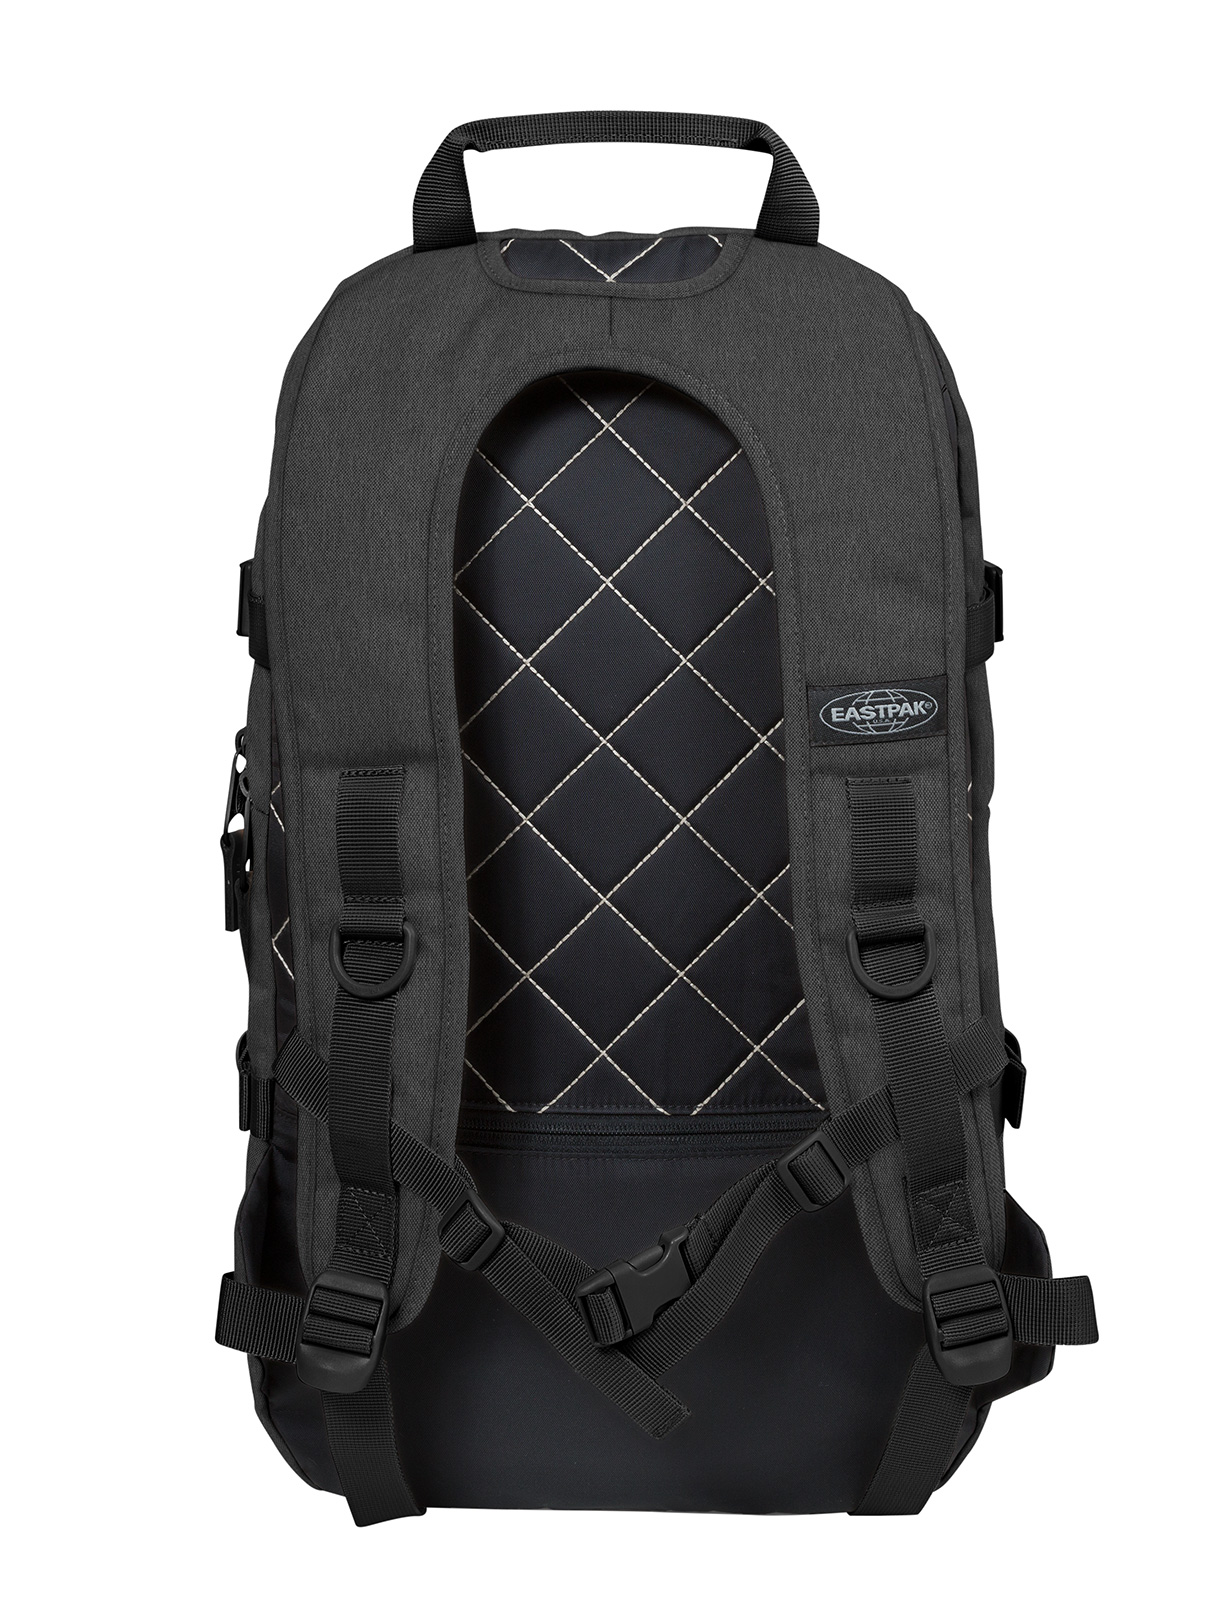 eastpak herren floid logo rucksack grau ebay. Black Bedroom Furniture Sets. Home Design Ideas